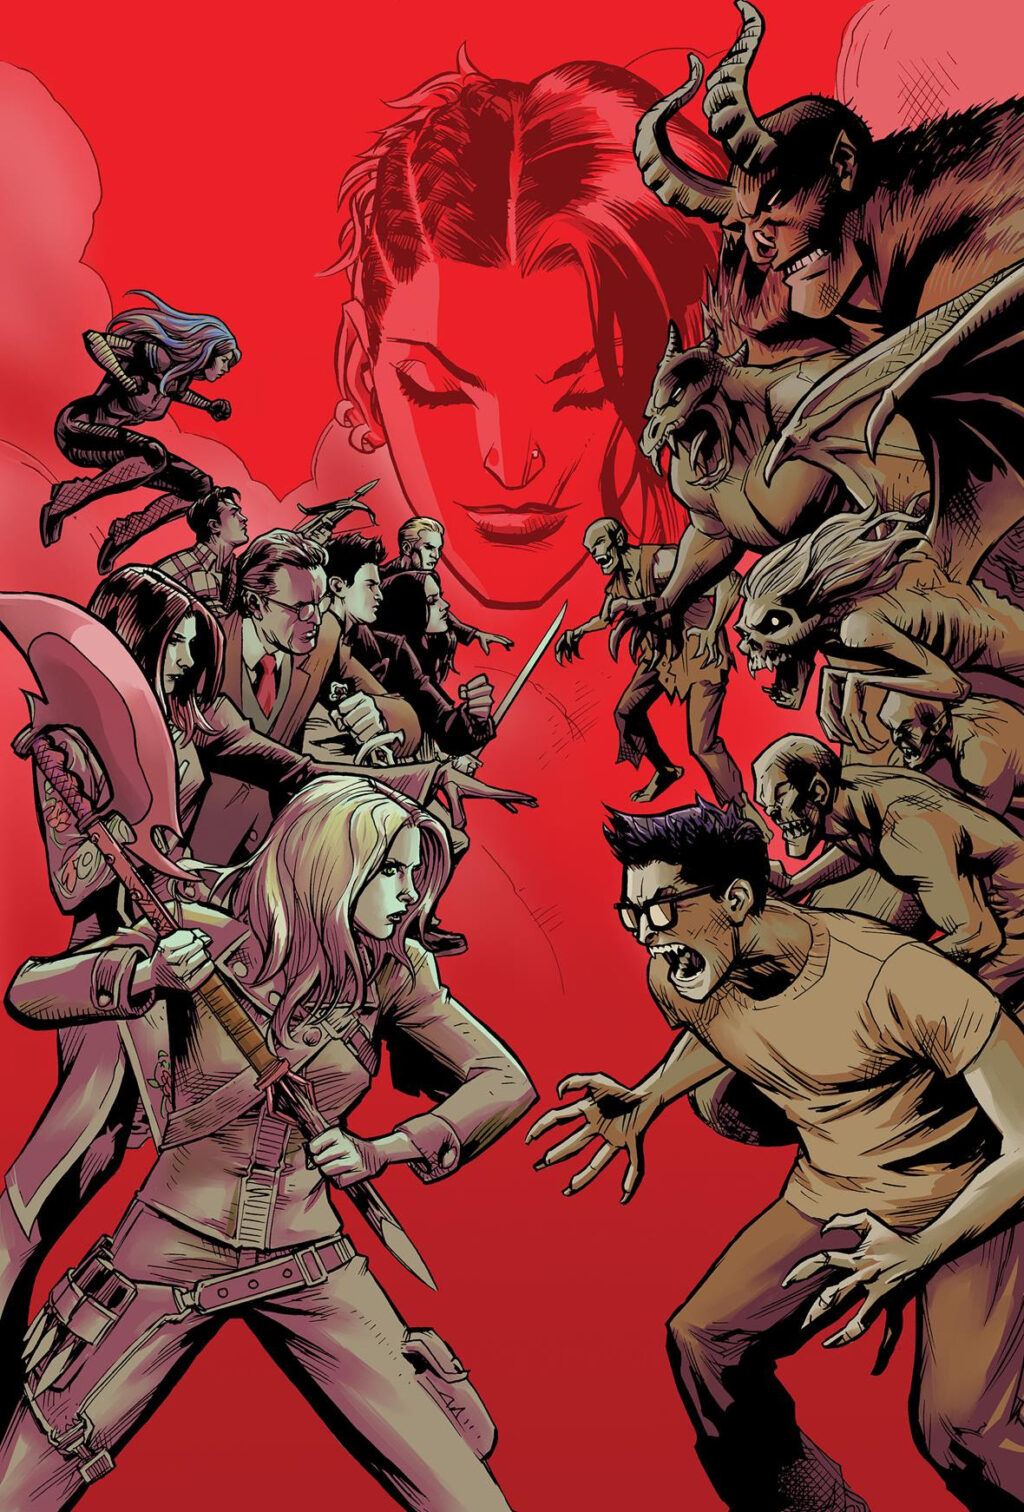 Buffy2 1024x1512 - Buffy Is Back in New Buffy the Vampire Slayer Comic Miniseries by Joss Whedon